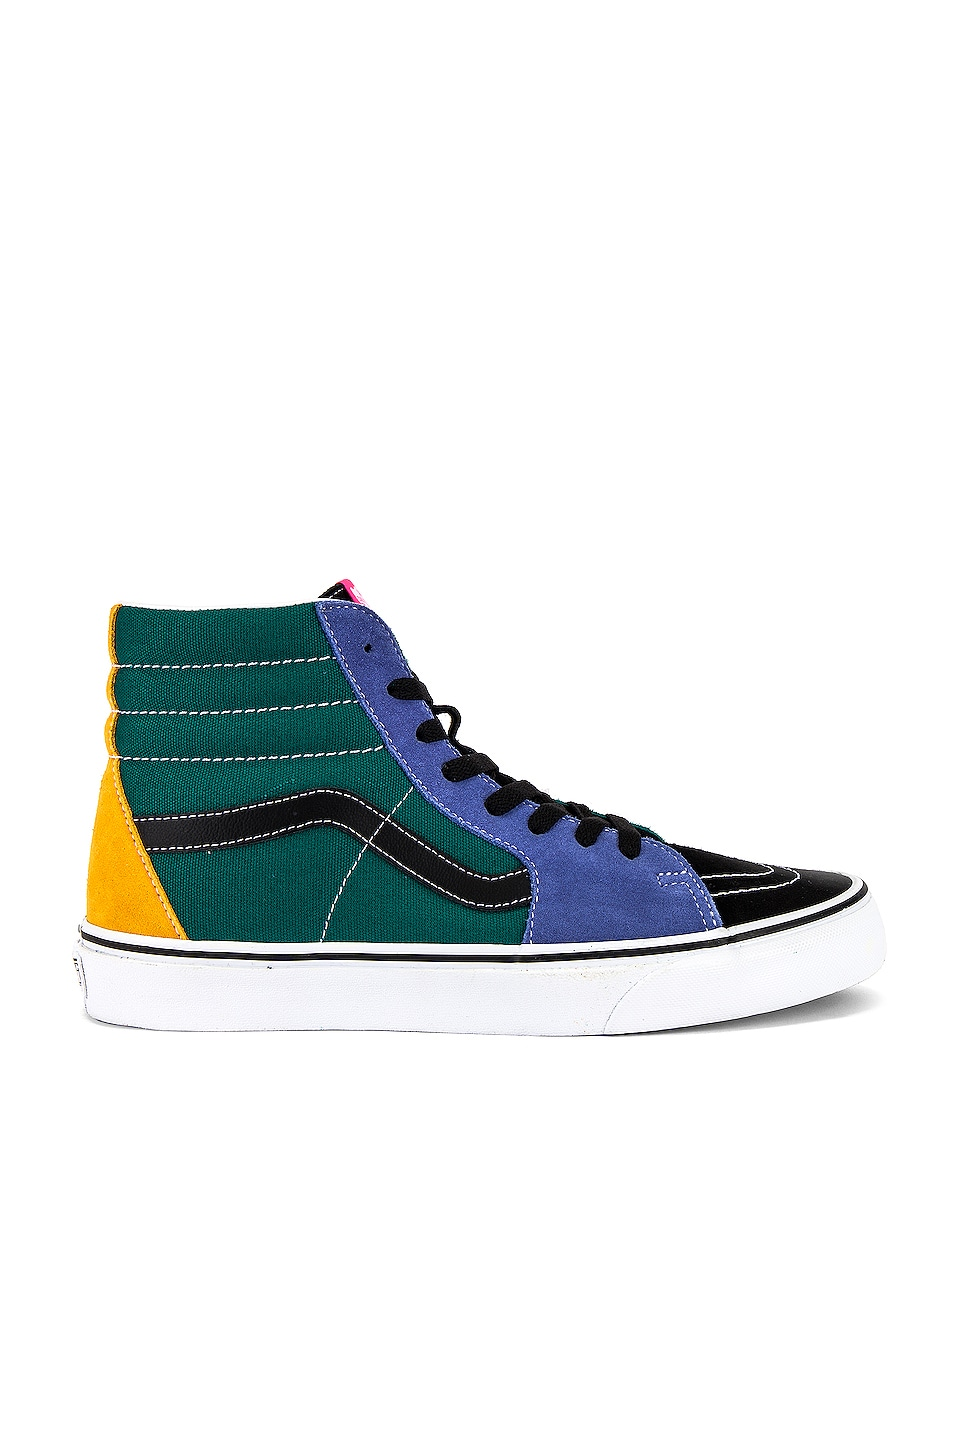 Vans Sk8-Hi in Cadmium Yellow & Tidepool